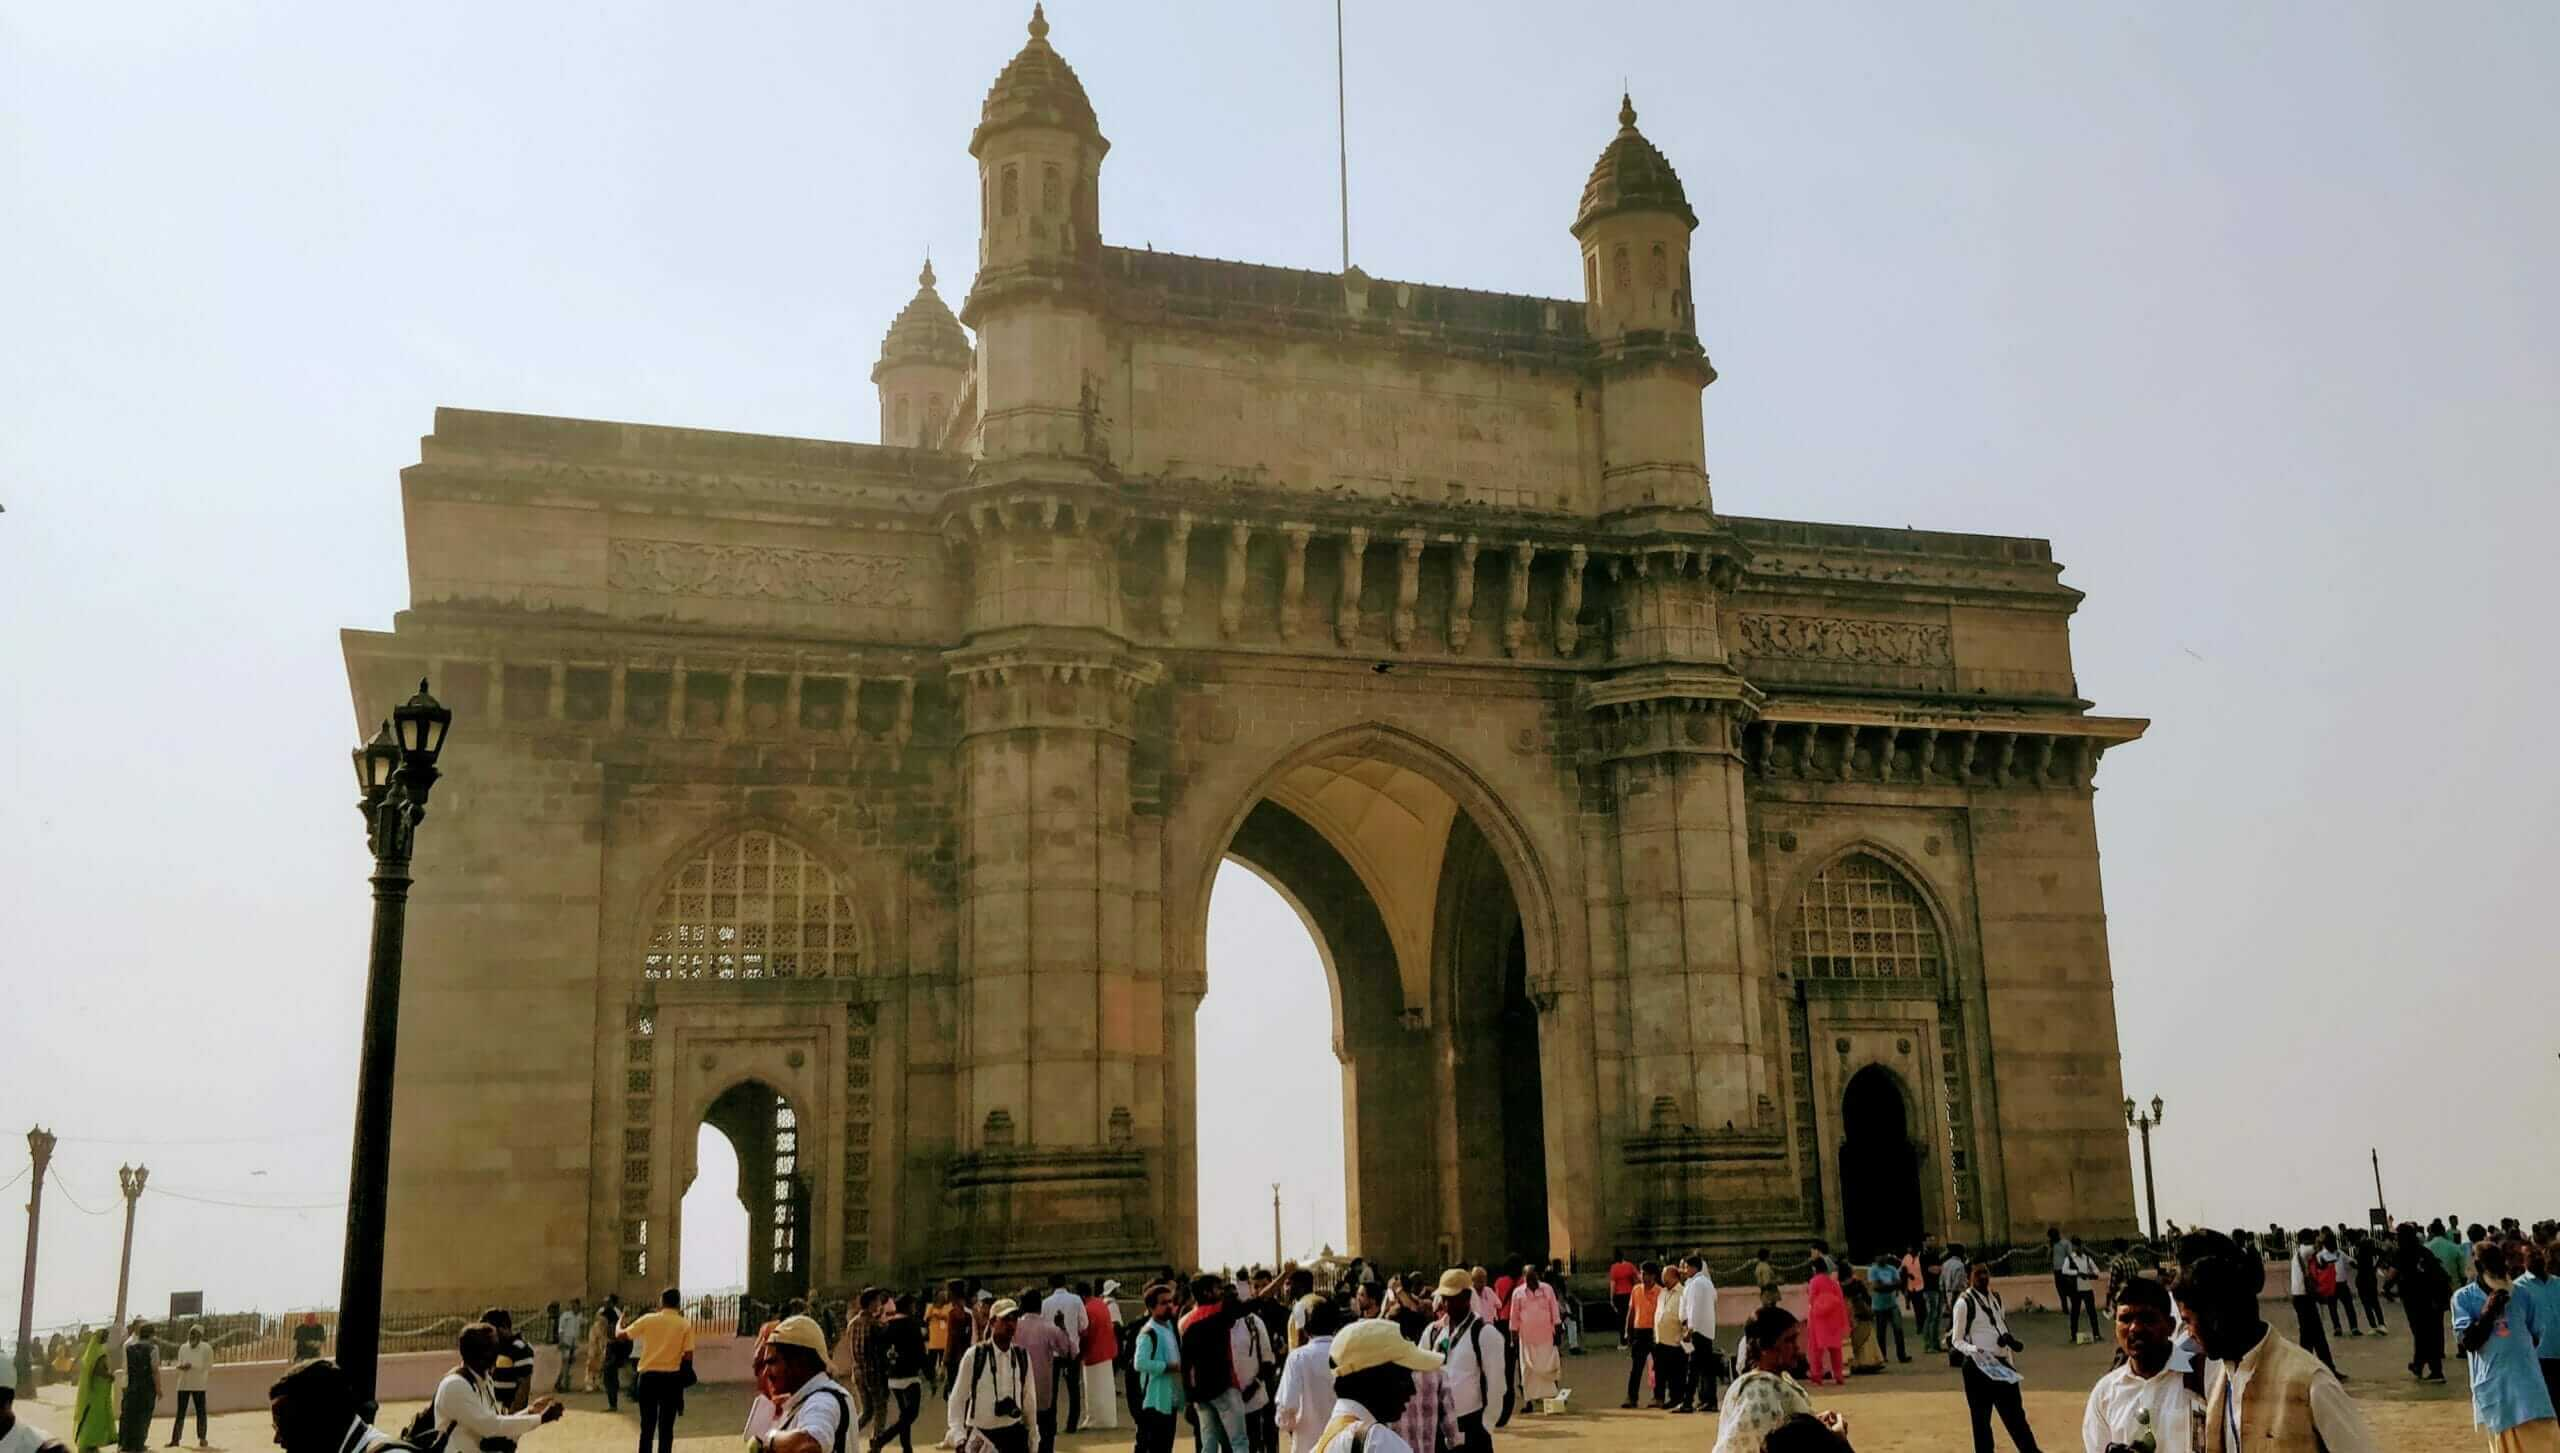 The Gateway of India in Mumbai was built by the British during their rule over India